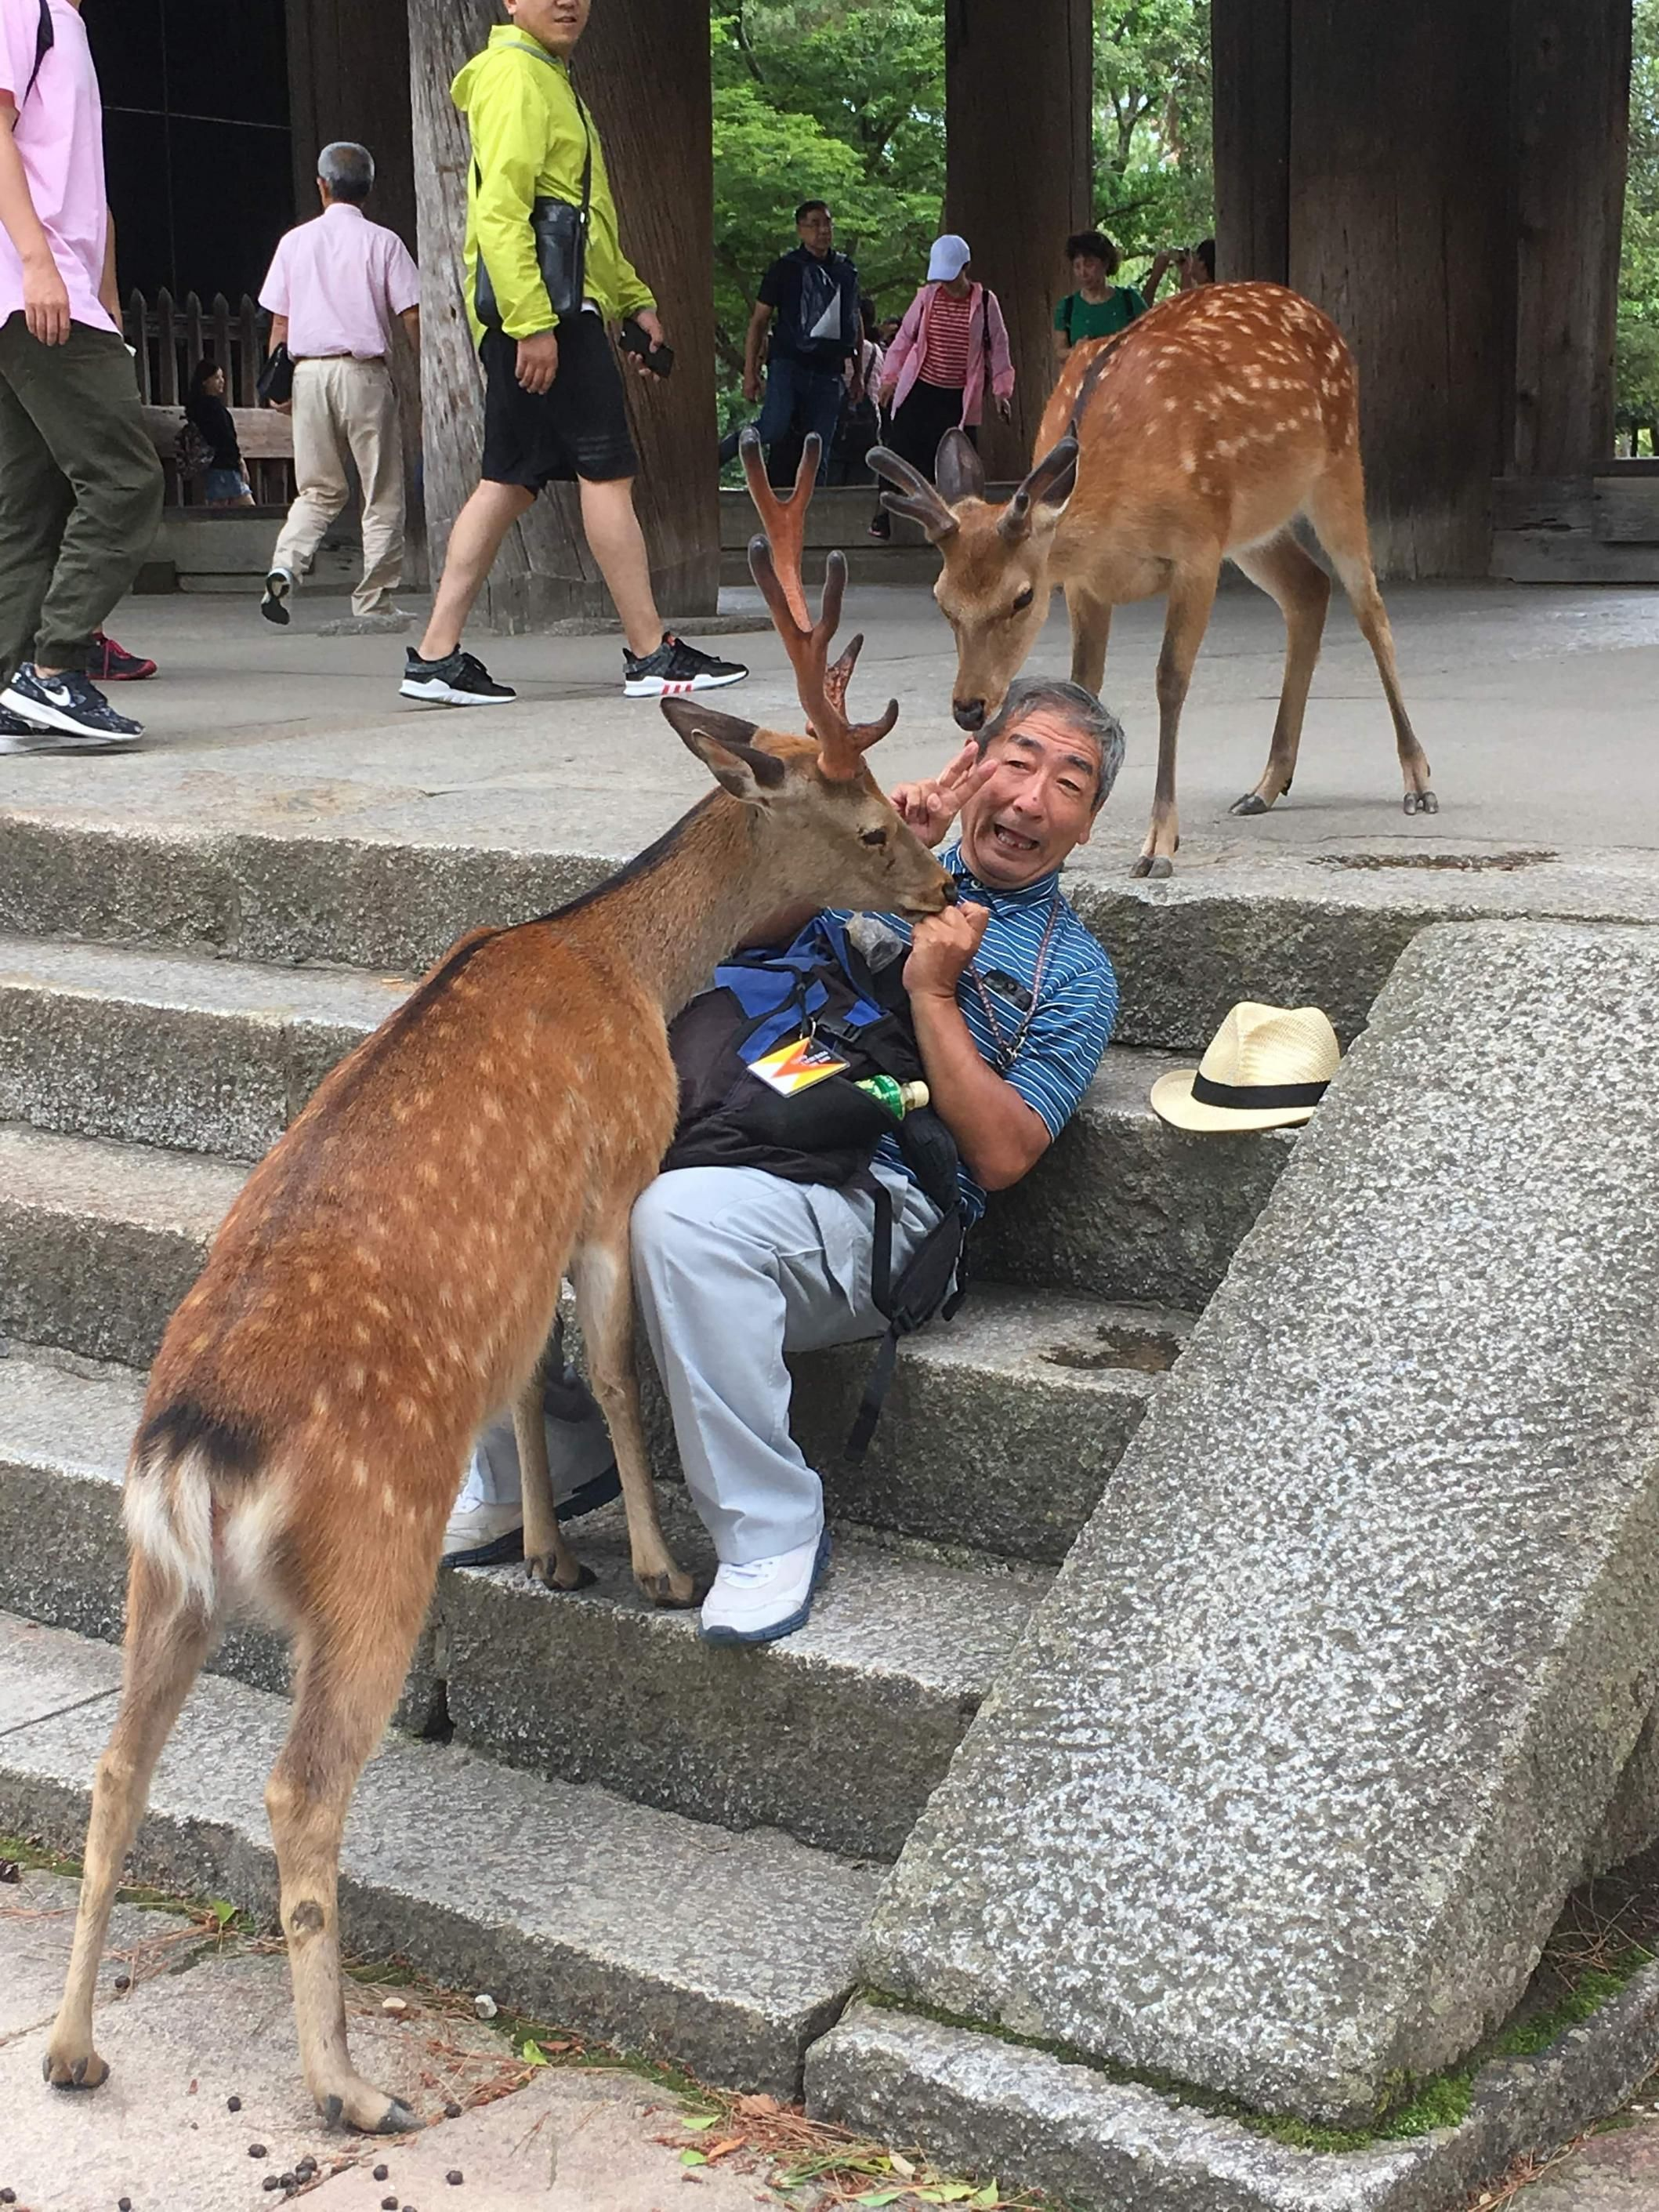 Captured a pic today of this man trying in vain to yield to a deer in Nara, Japan.